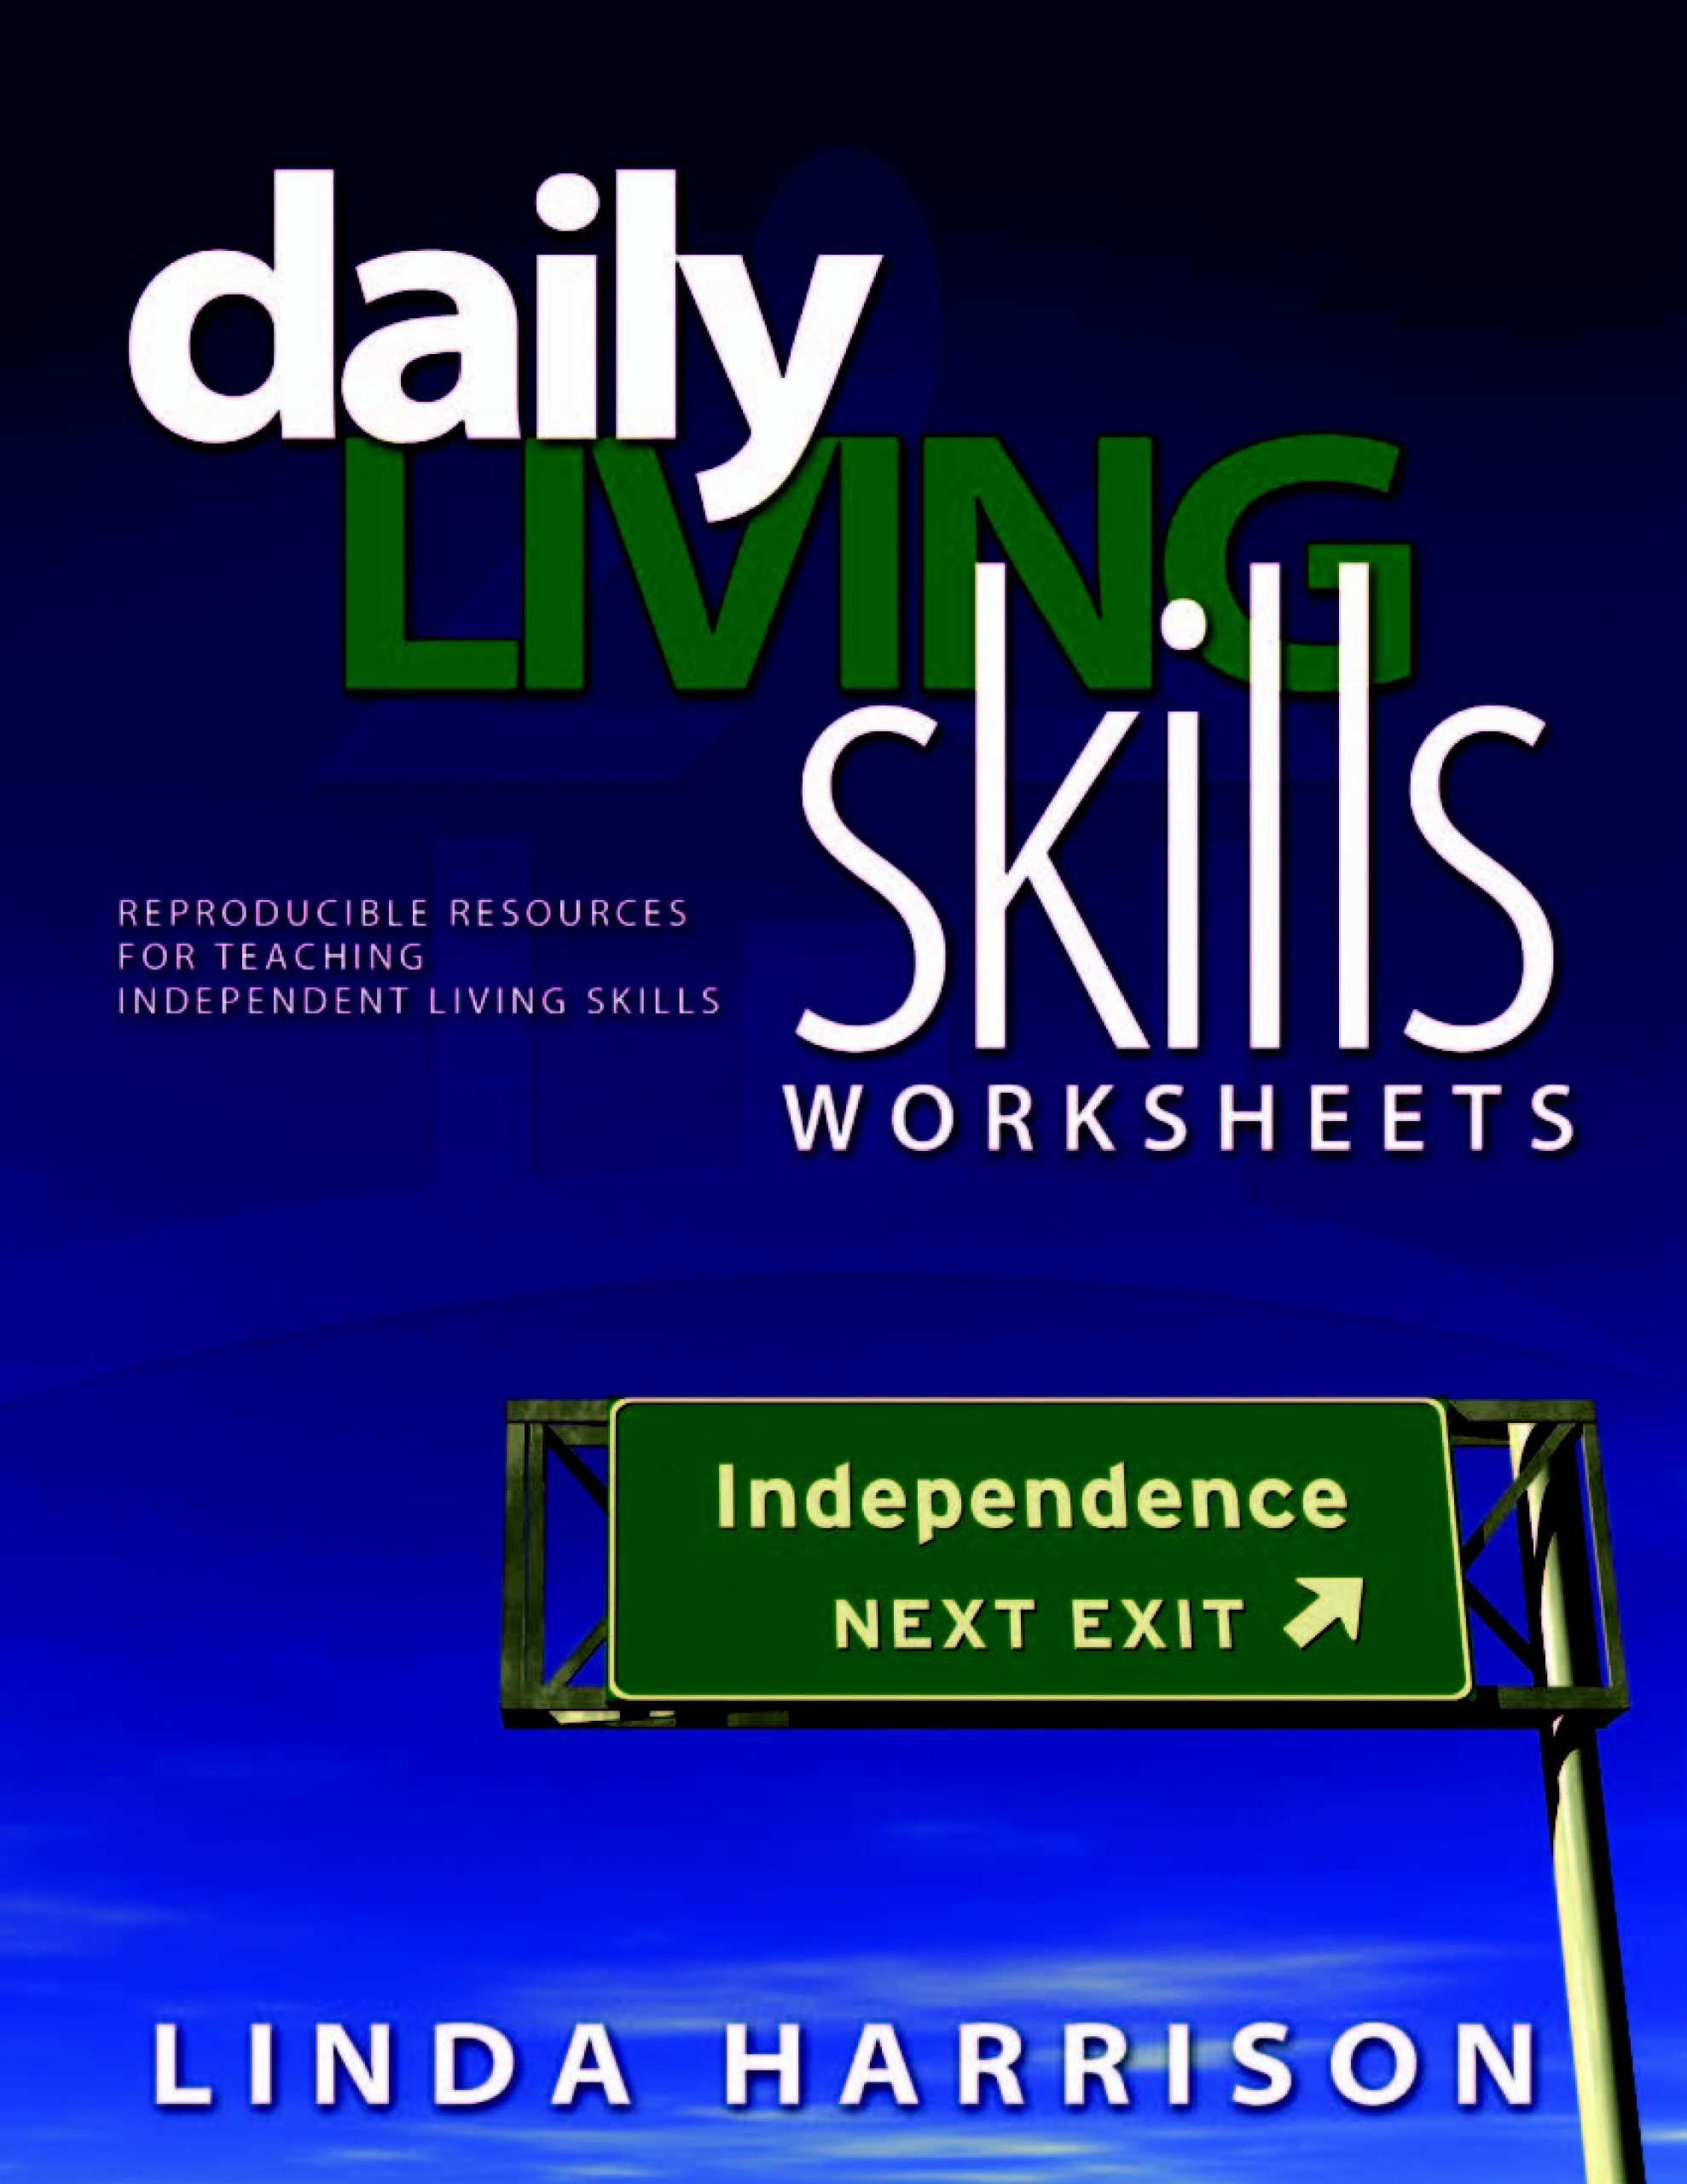 Free Independent Living Skills Worksheets Daily Living Skills Worksheets – Daily Living Skills